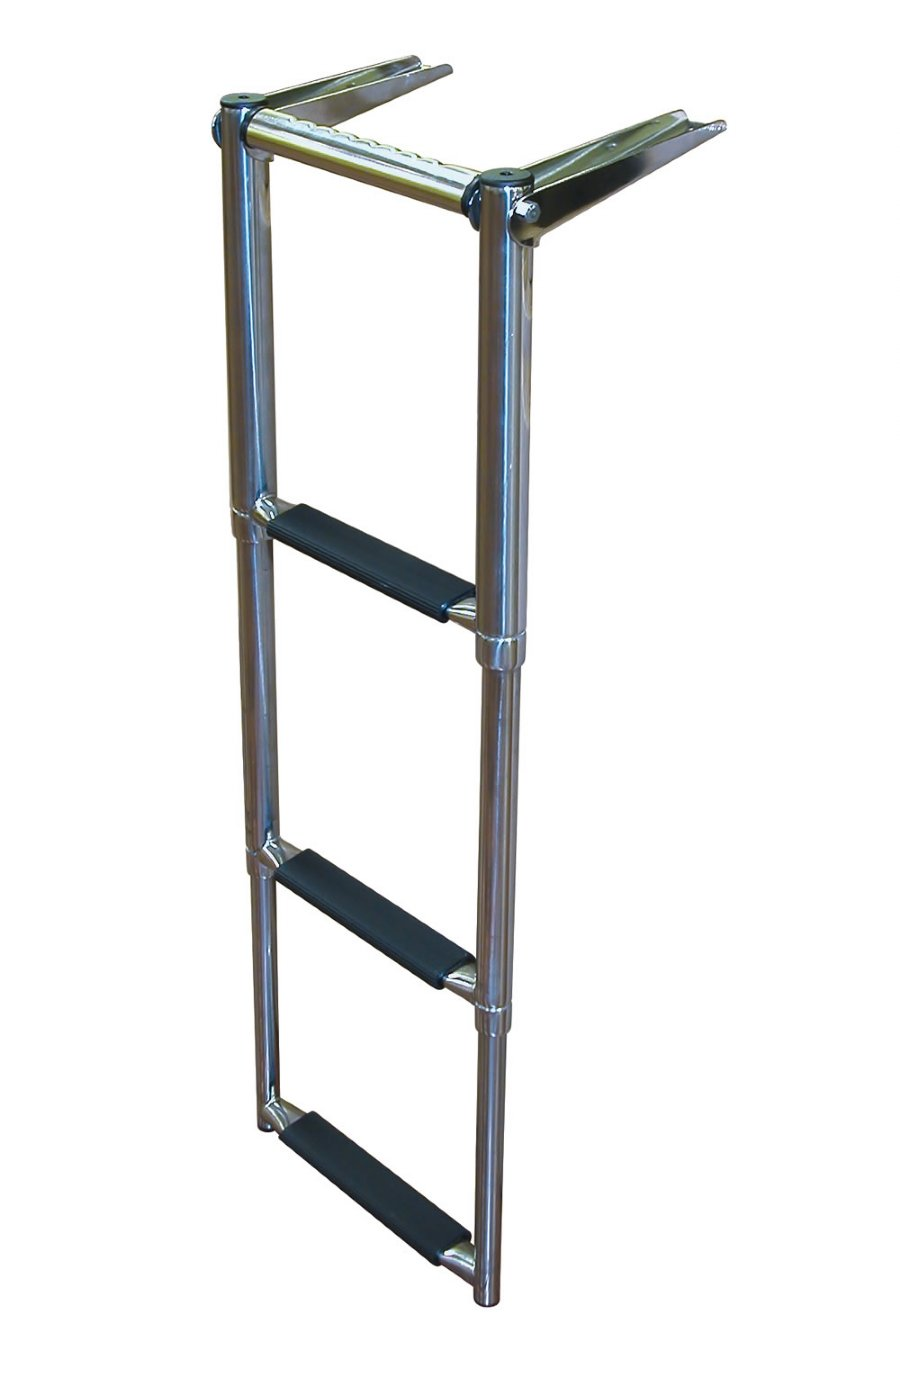 4 Step Over Platform Telescoping Boat Ladders